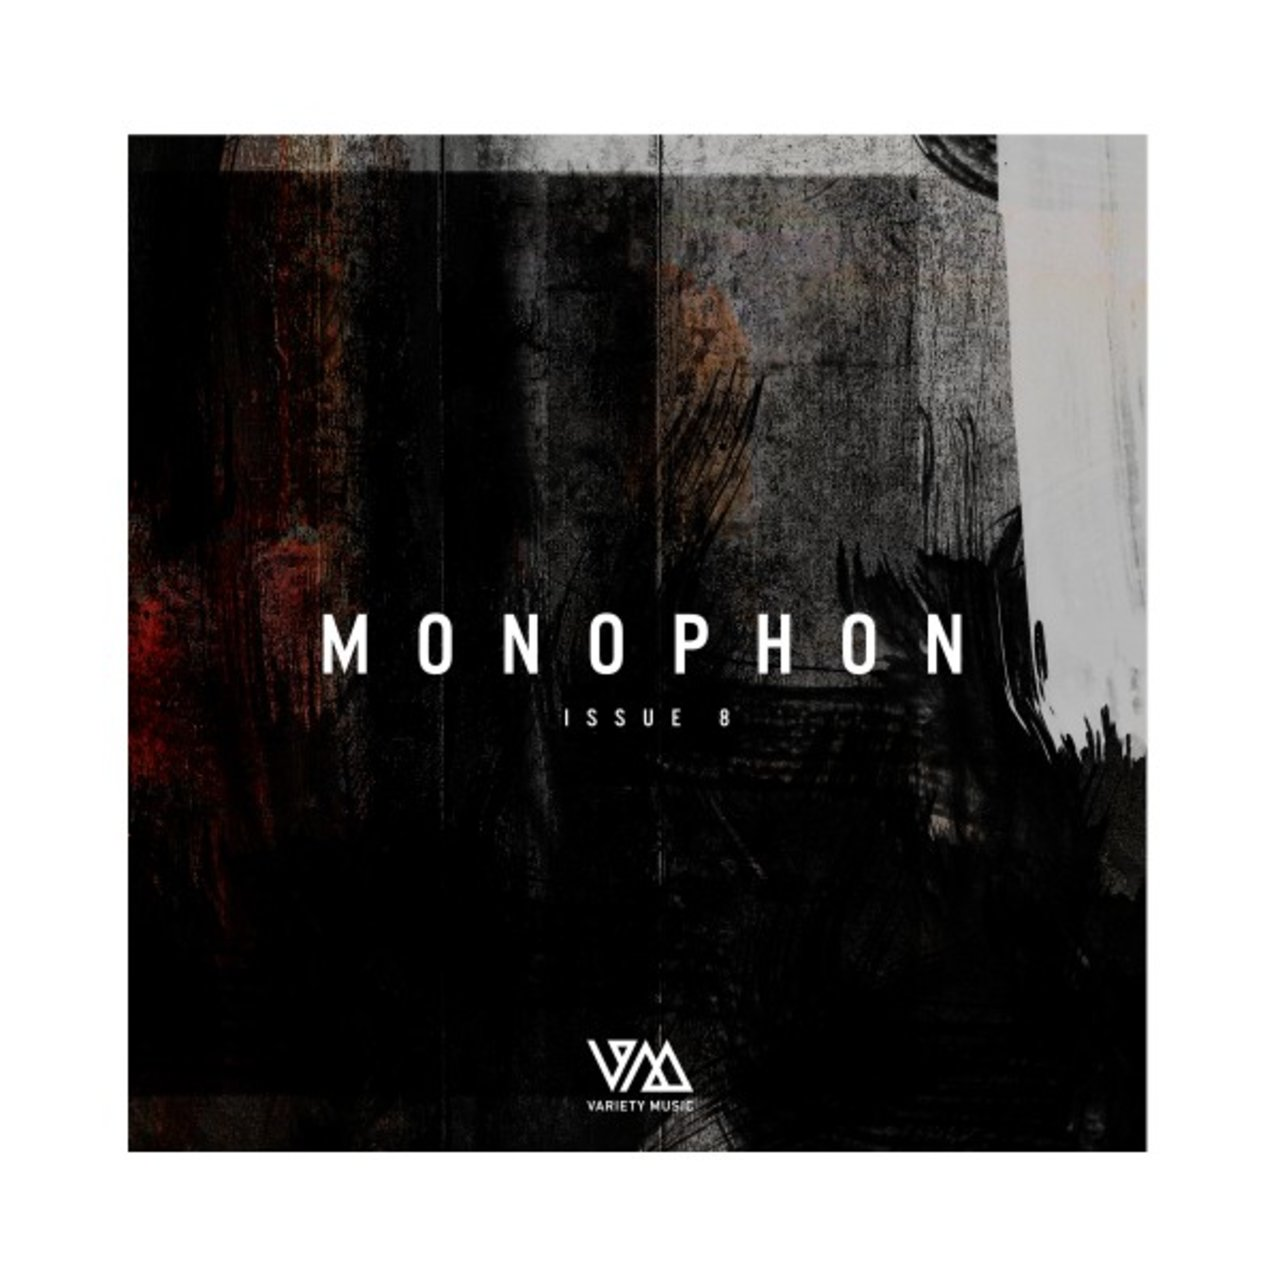 Monophon Issue 8